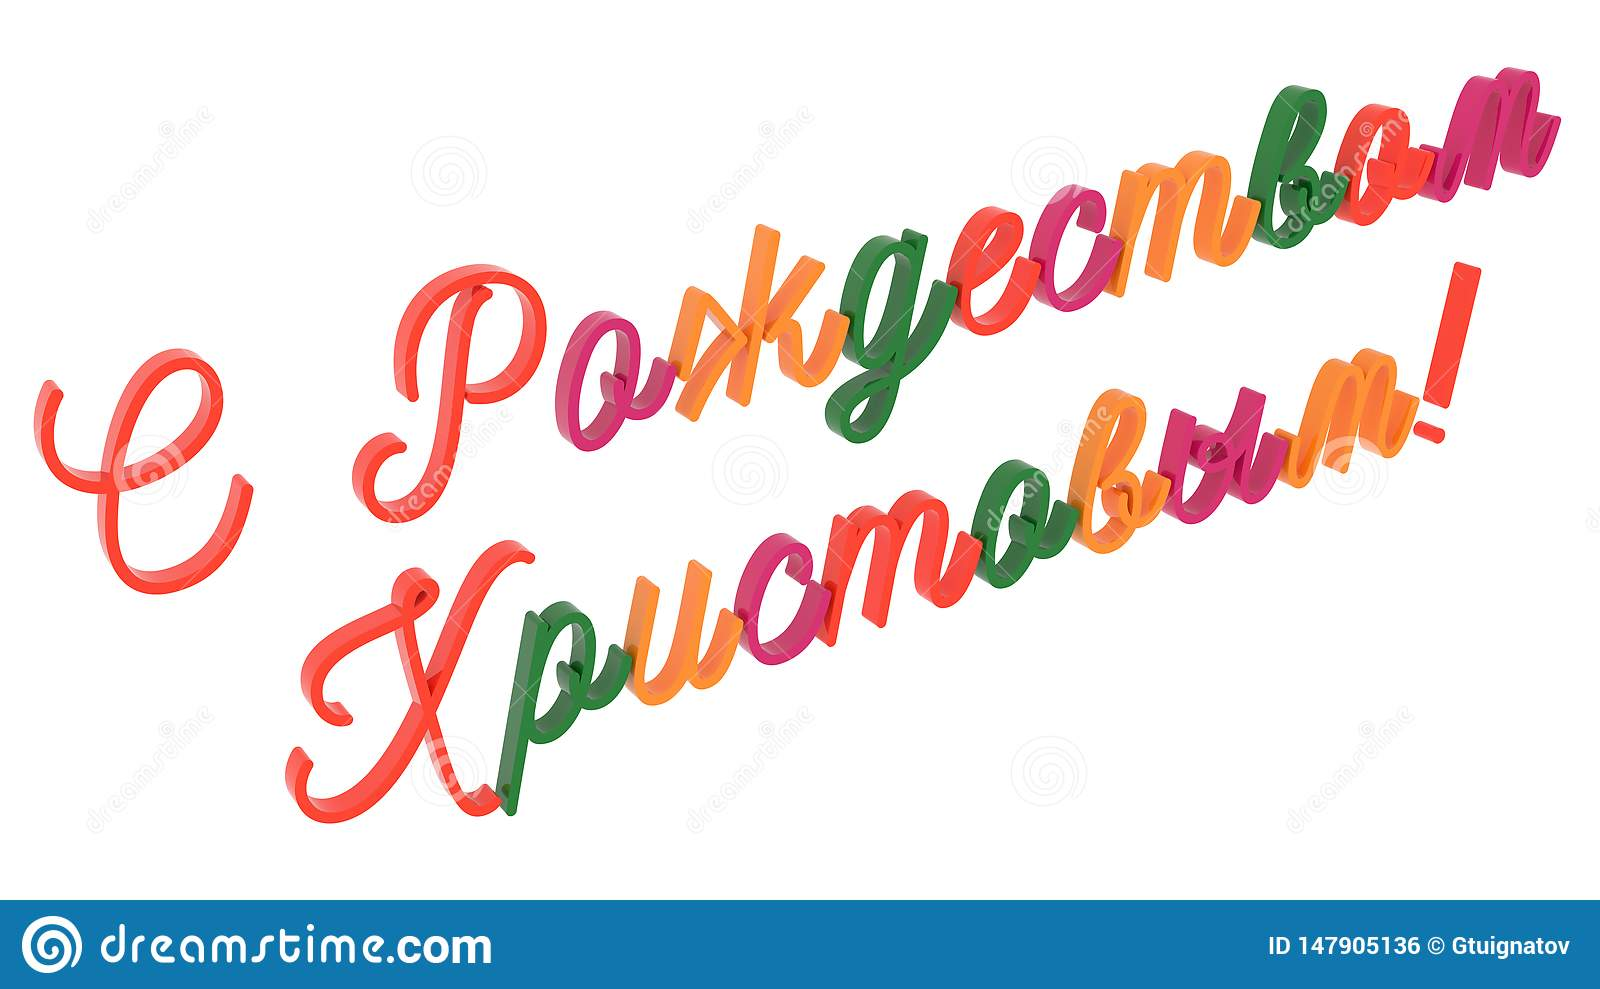 Merry Christmas In Russian Words 3D Rendered Congratulation Text With Calligraphic, Thin Font Illustration Colored